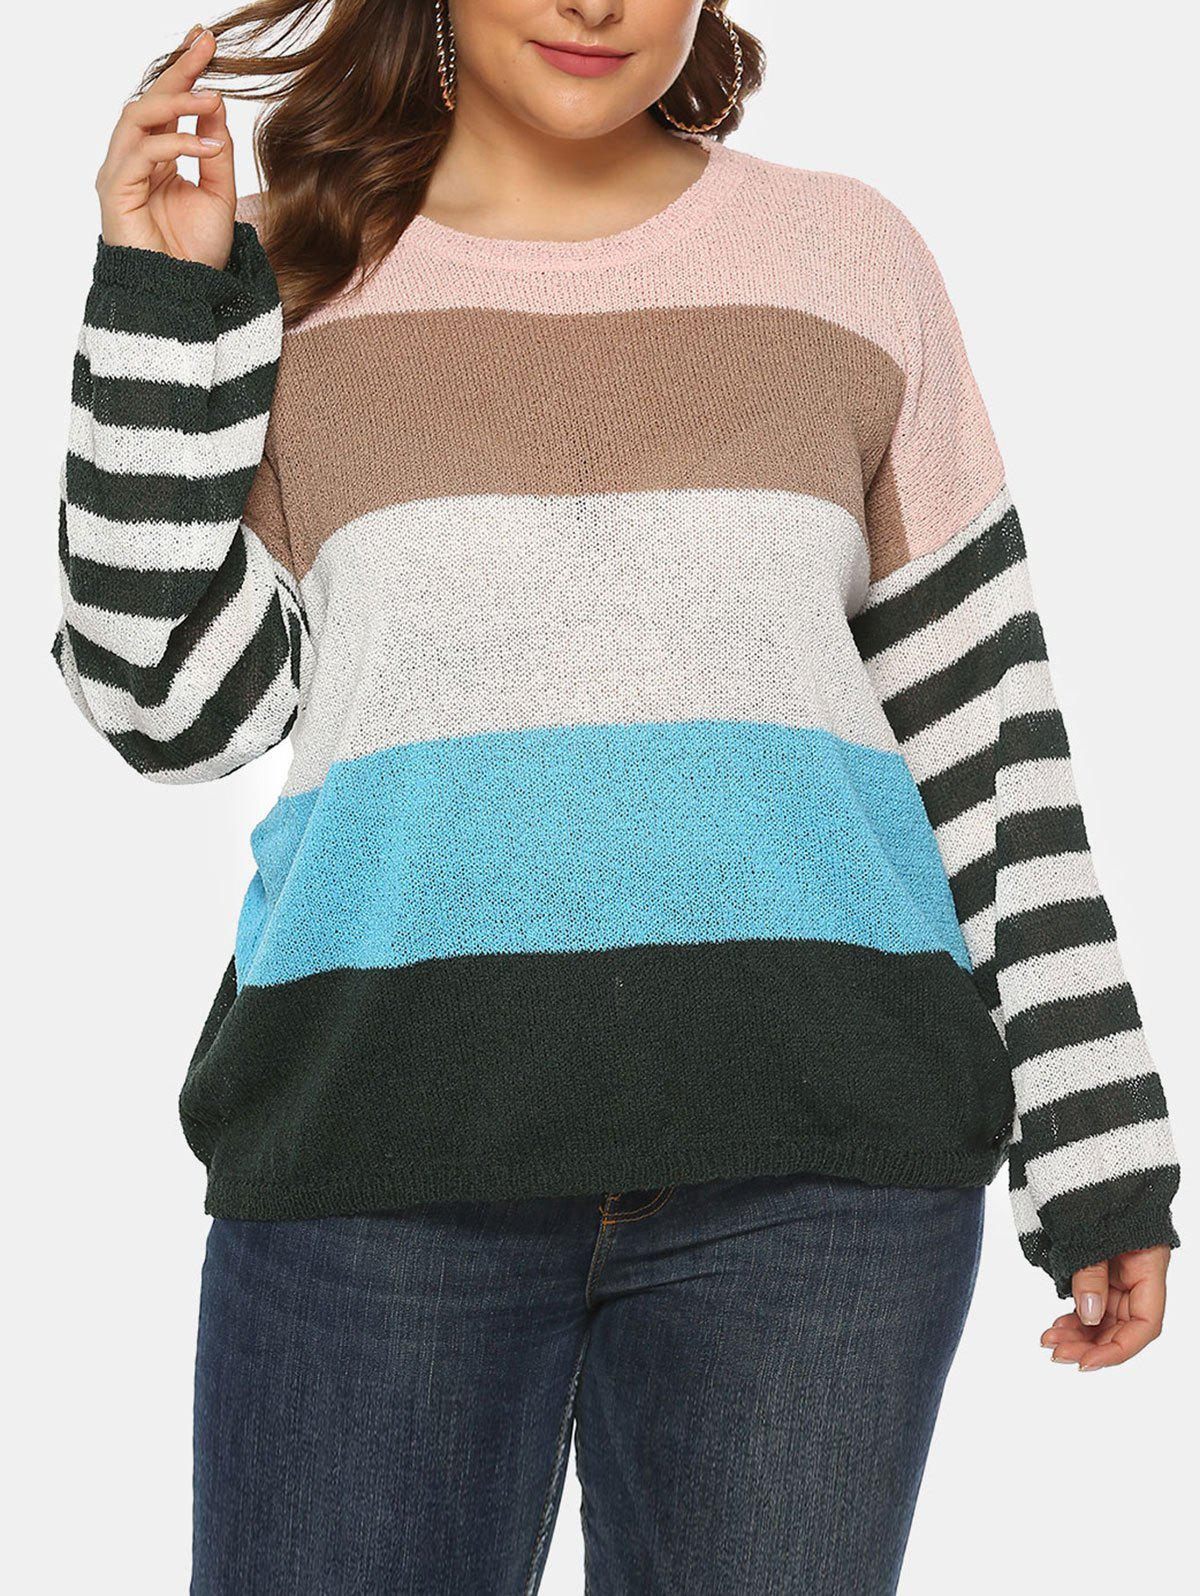 Plus Size Striped Colorblock Drop Shoulder Sweater - DEEP SKY BLUE 1X